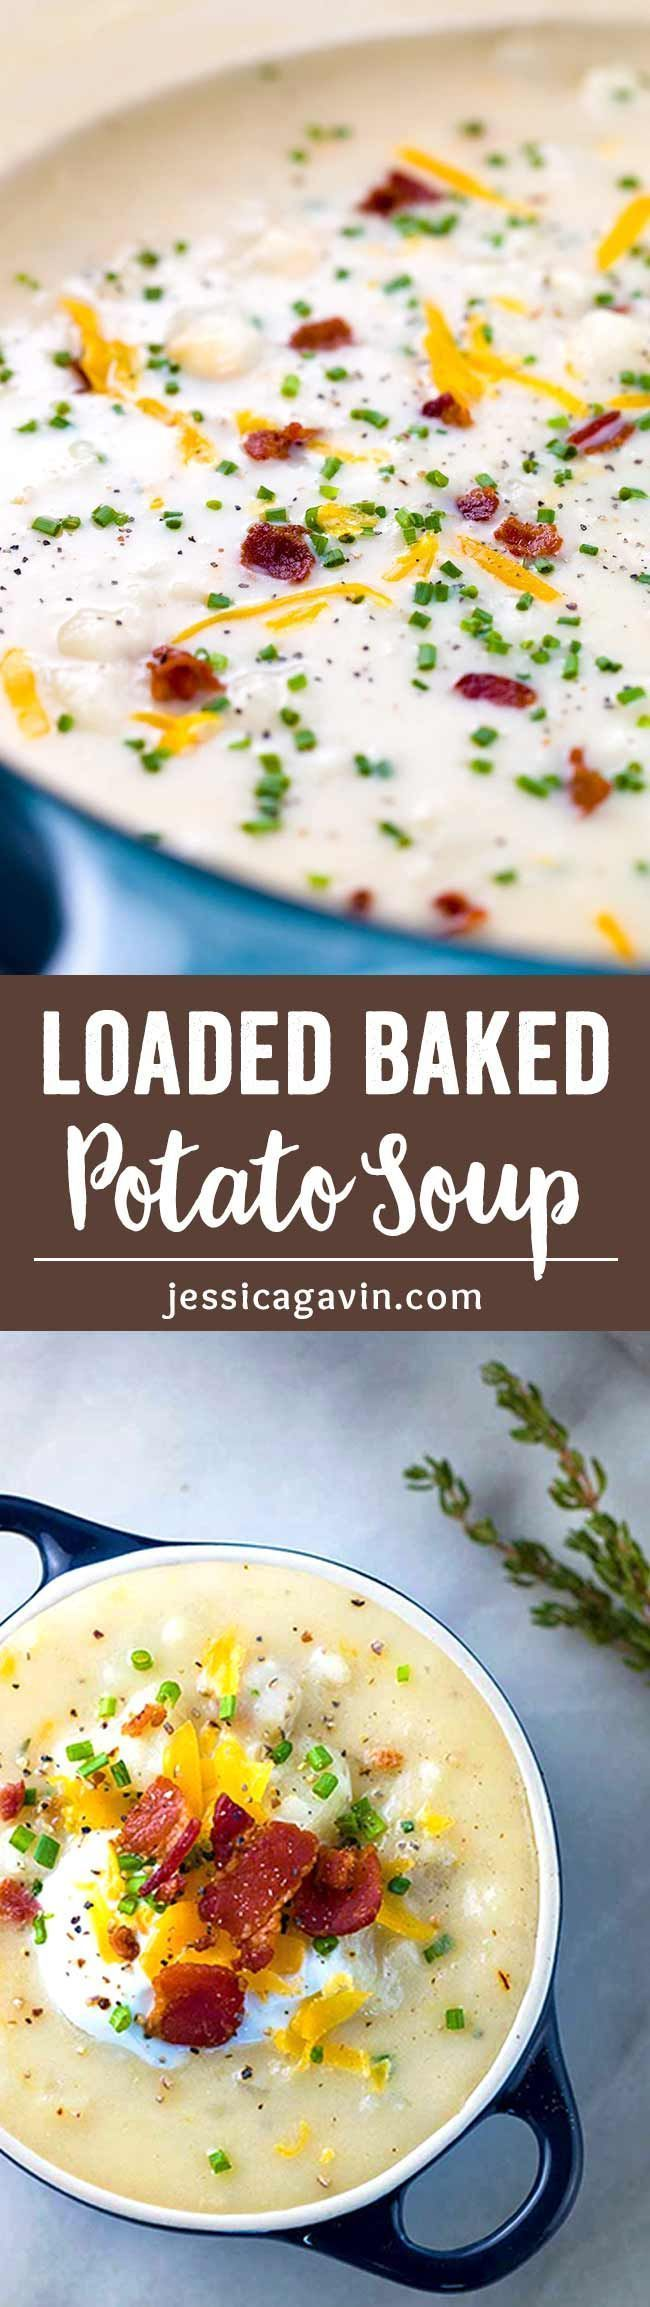 Loaded Baked Potato Soup with Bacon - Each spoonful is packed with savory bacon, potatoes, cheese and fresh herbs. via /foodiegavin/